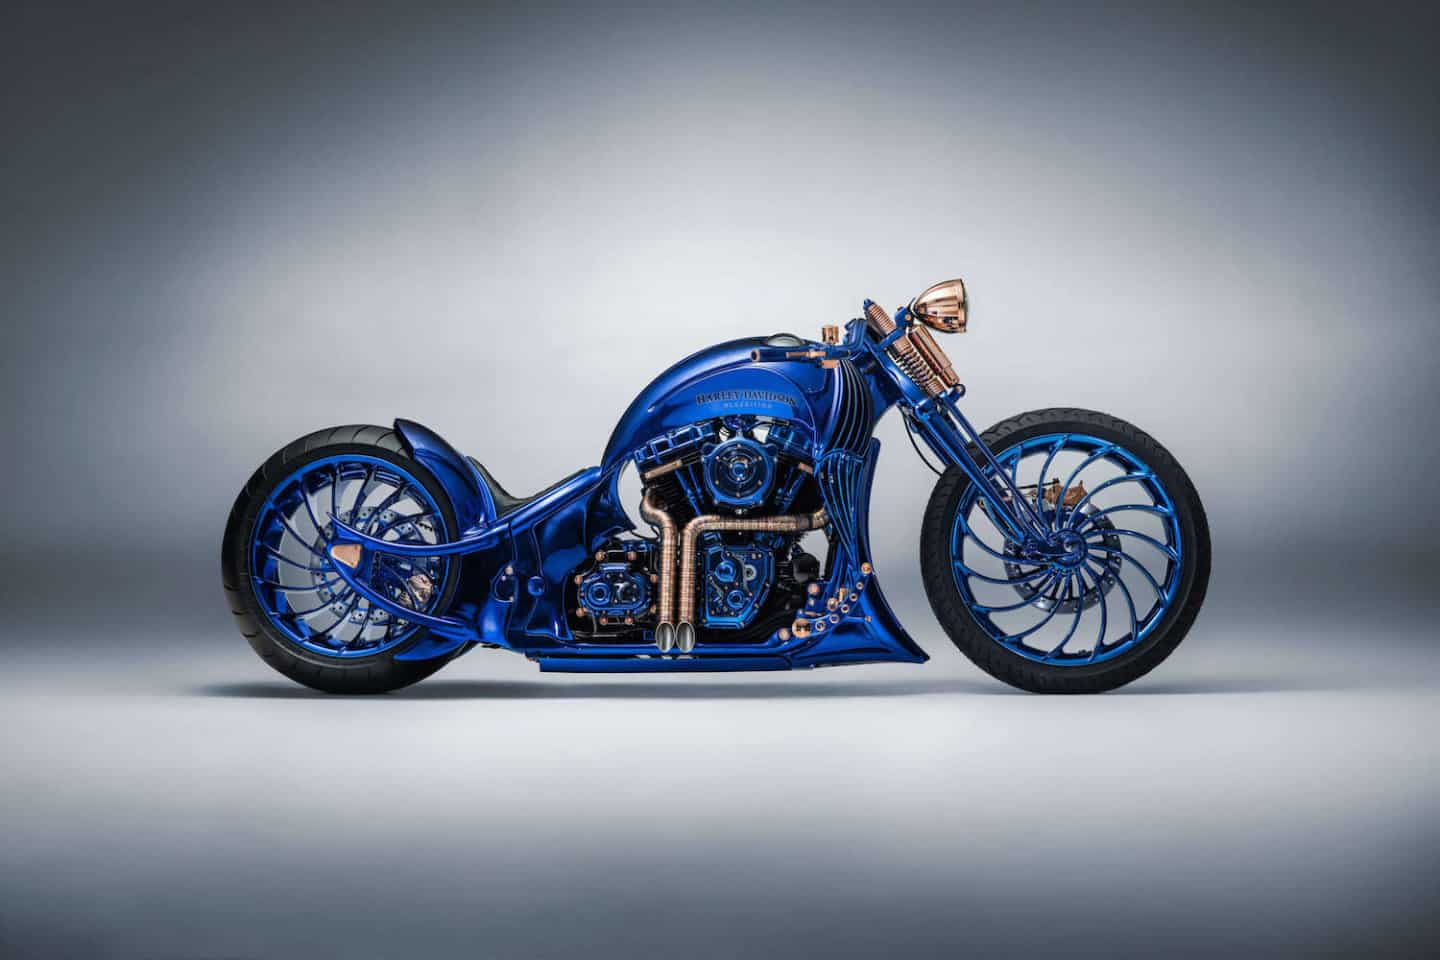 Bucherer Harley-Davidson Blue Edition